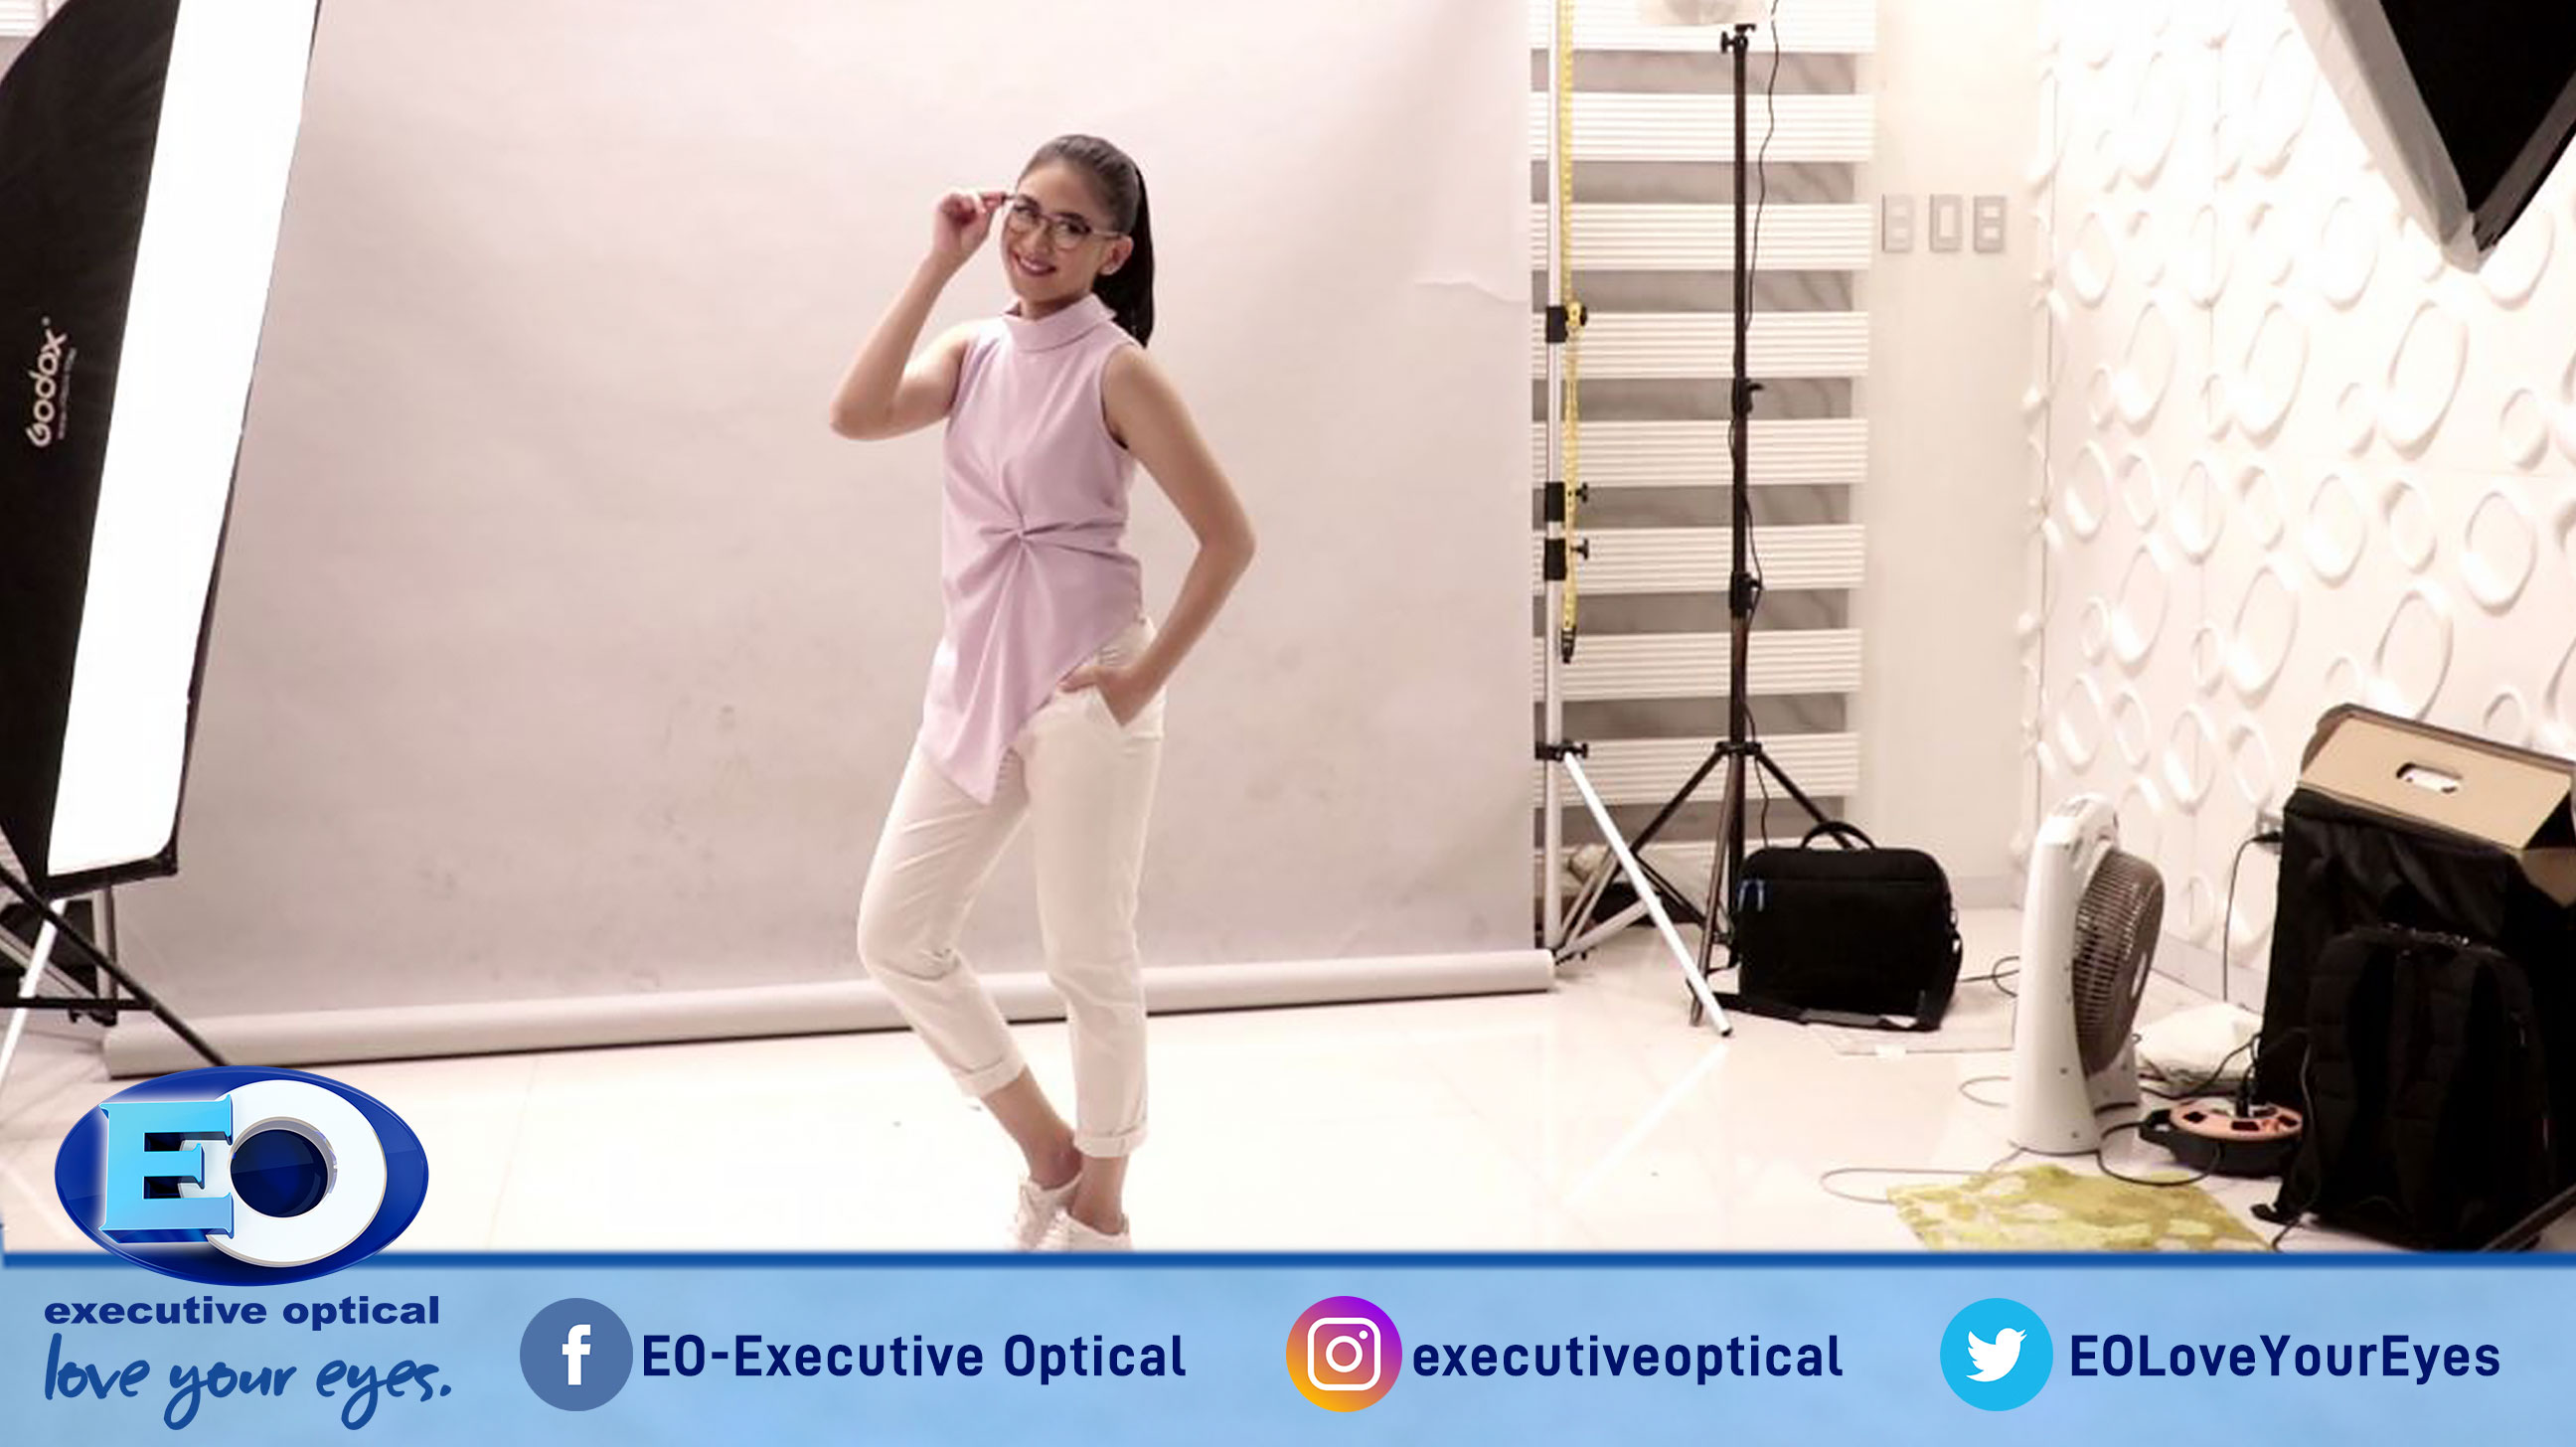 The Big Reveal: Sarah Geronimo is the Newest Member of the EO-Executive Optical Family